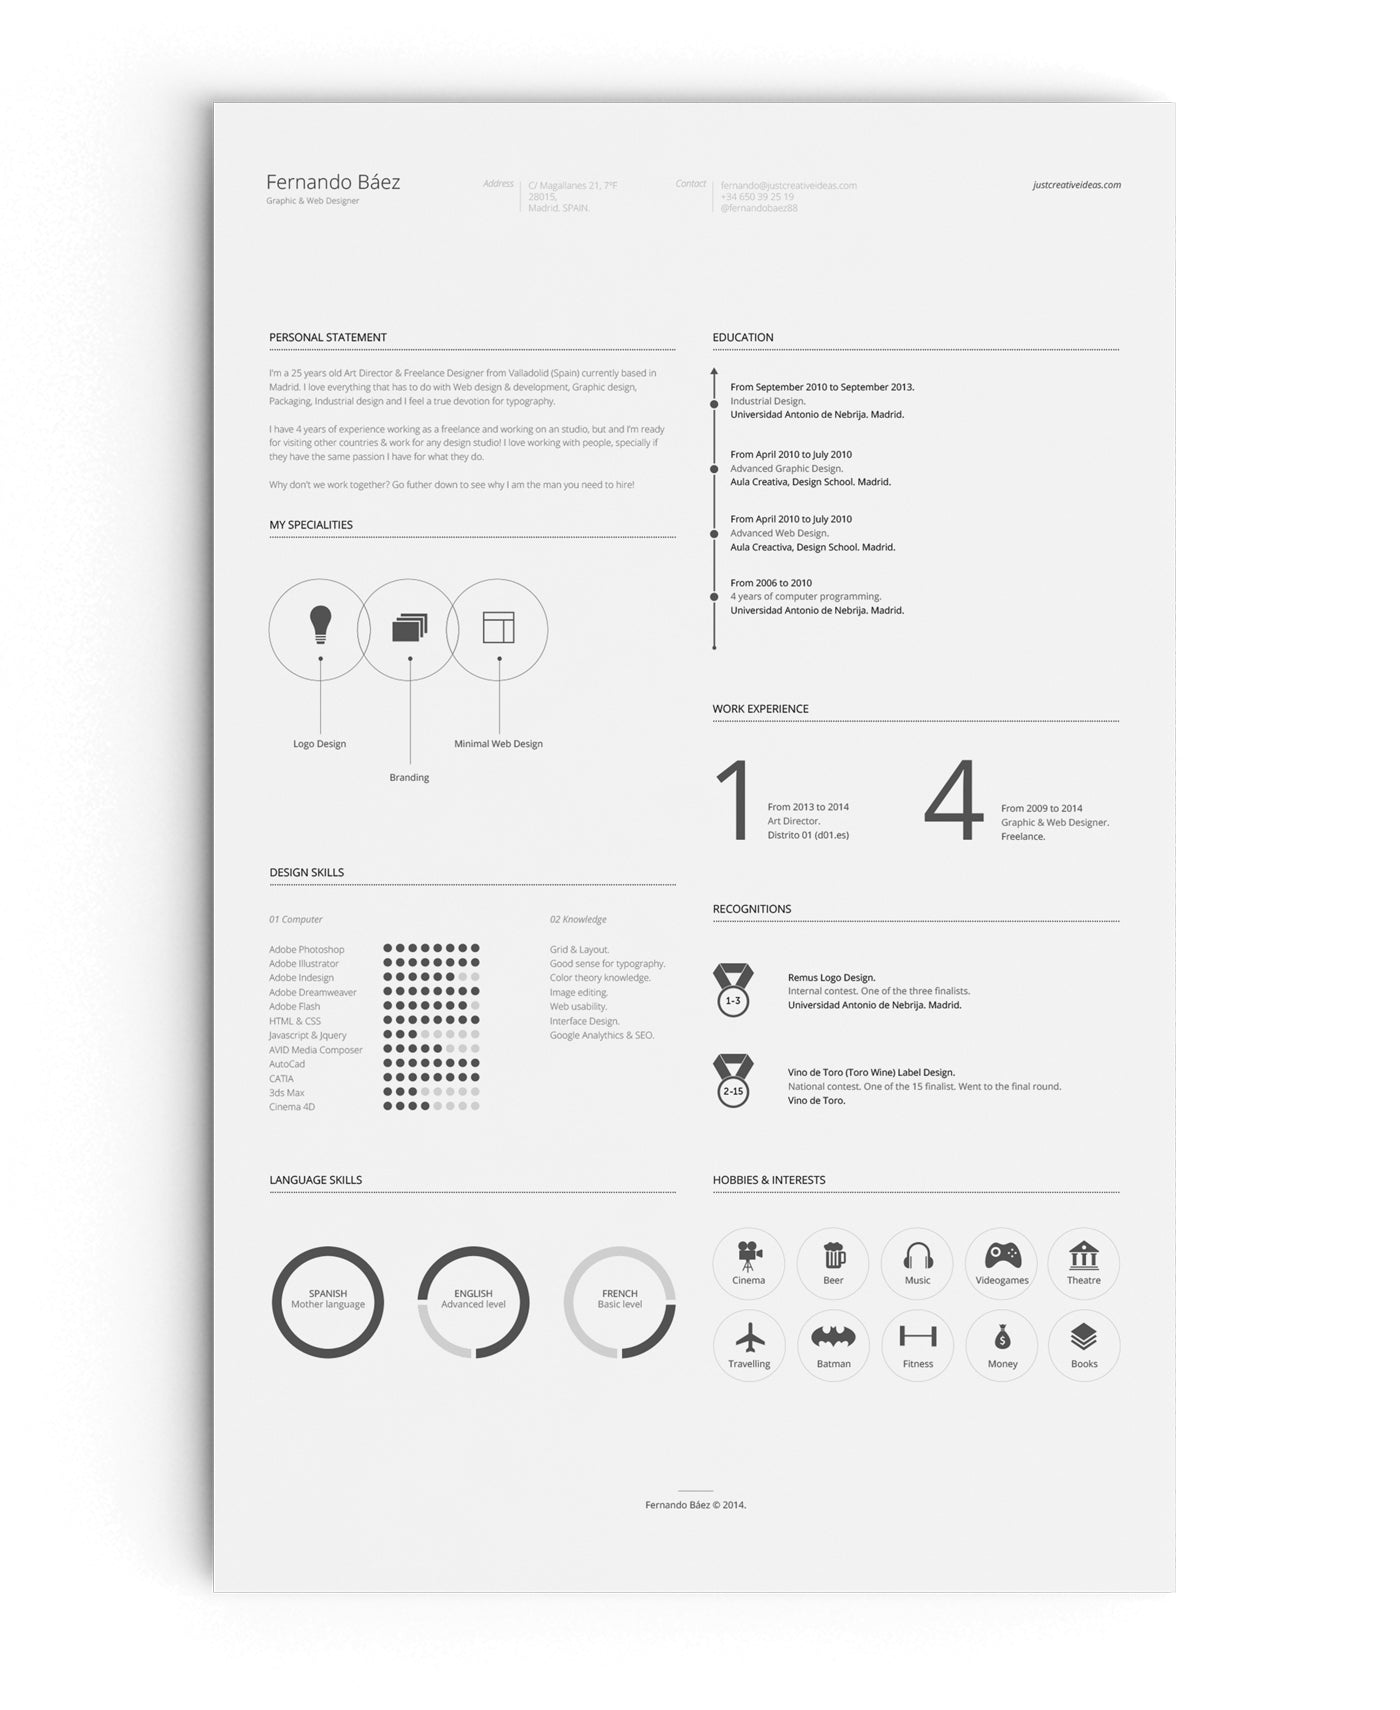 Captivating Free Resume Template In Illustrator (AI) Format